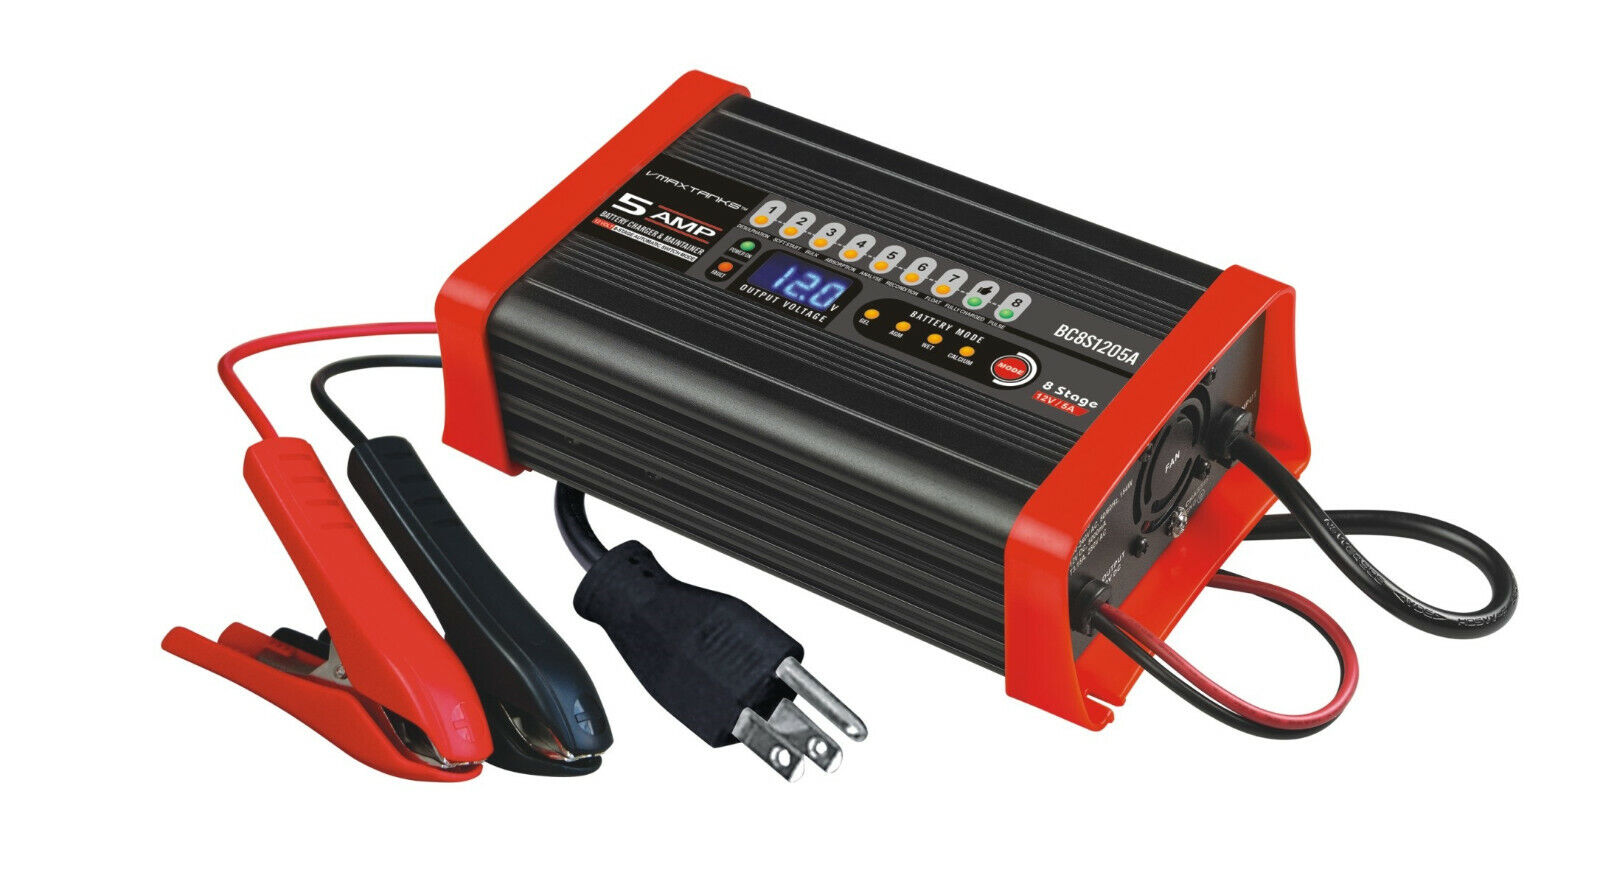 VMAX BC8S1205A 12V 5A Smart Charger and Tender for VMAXTANKS